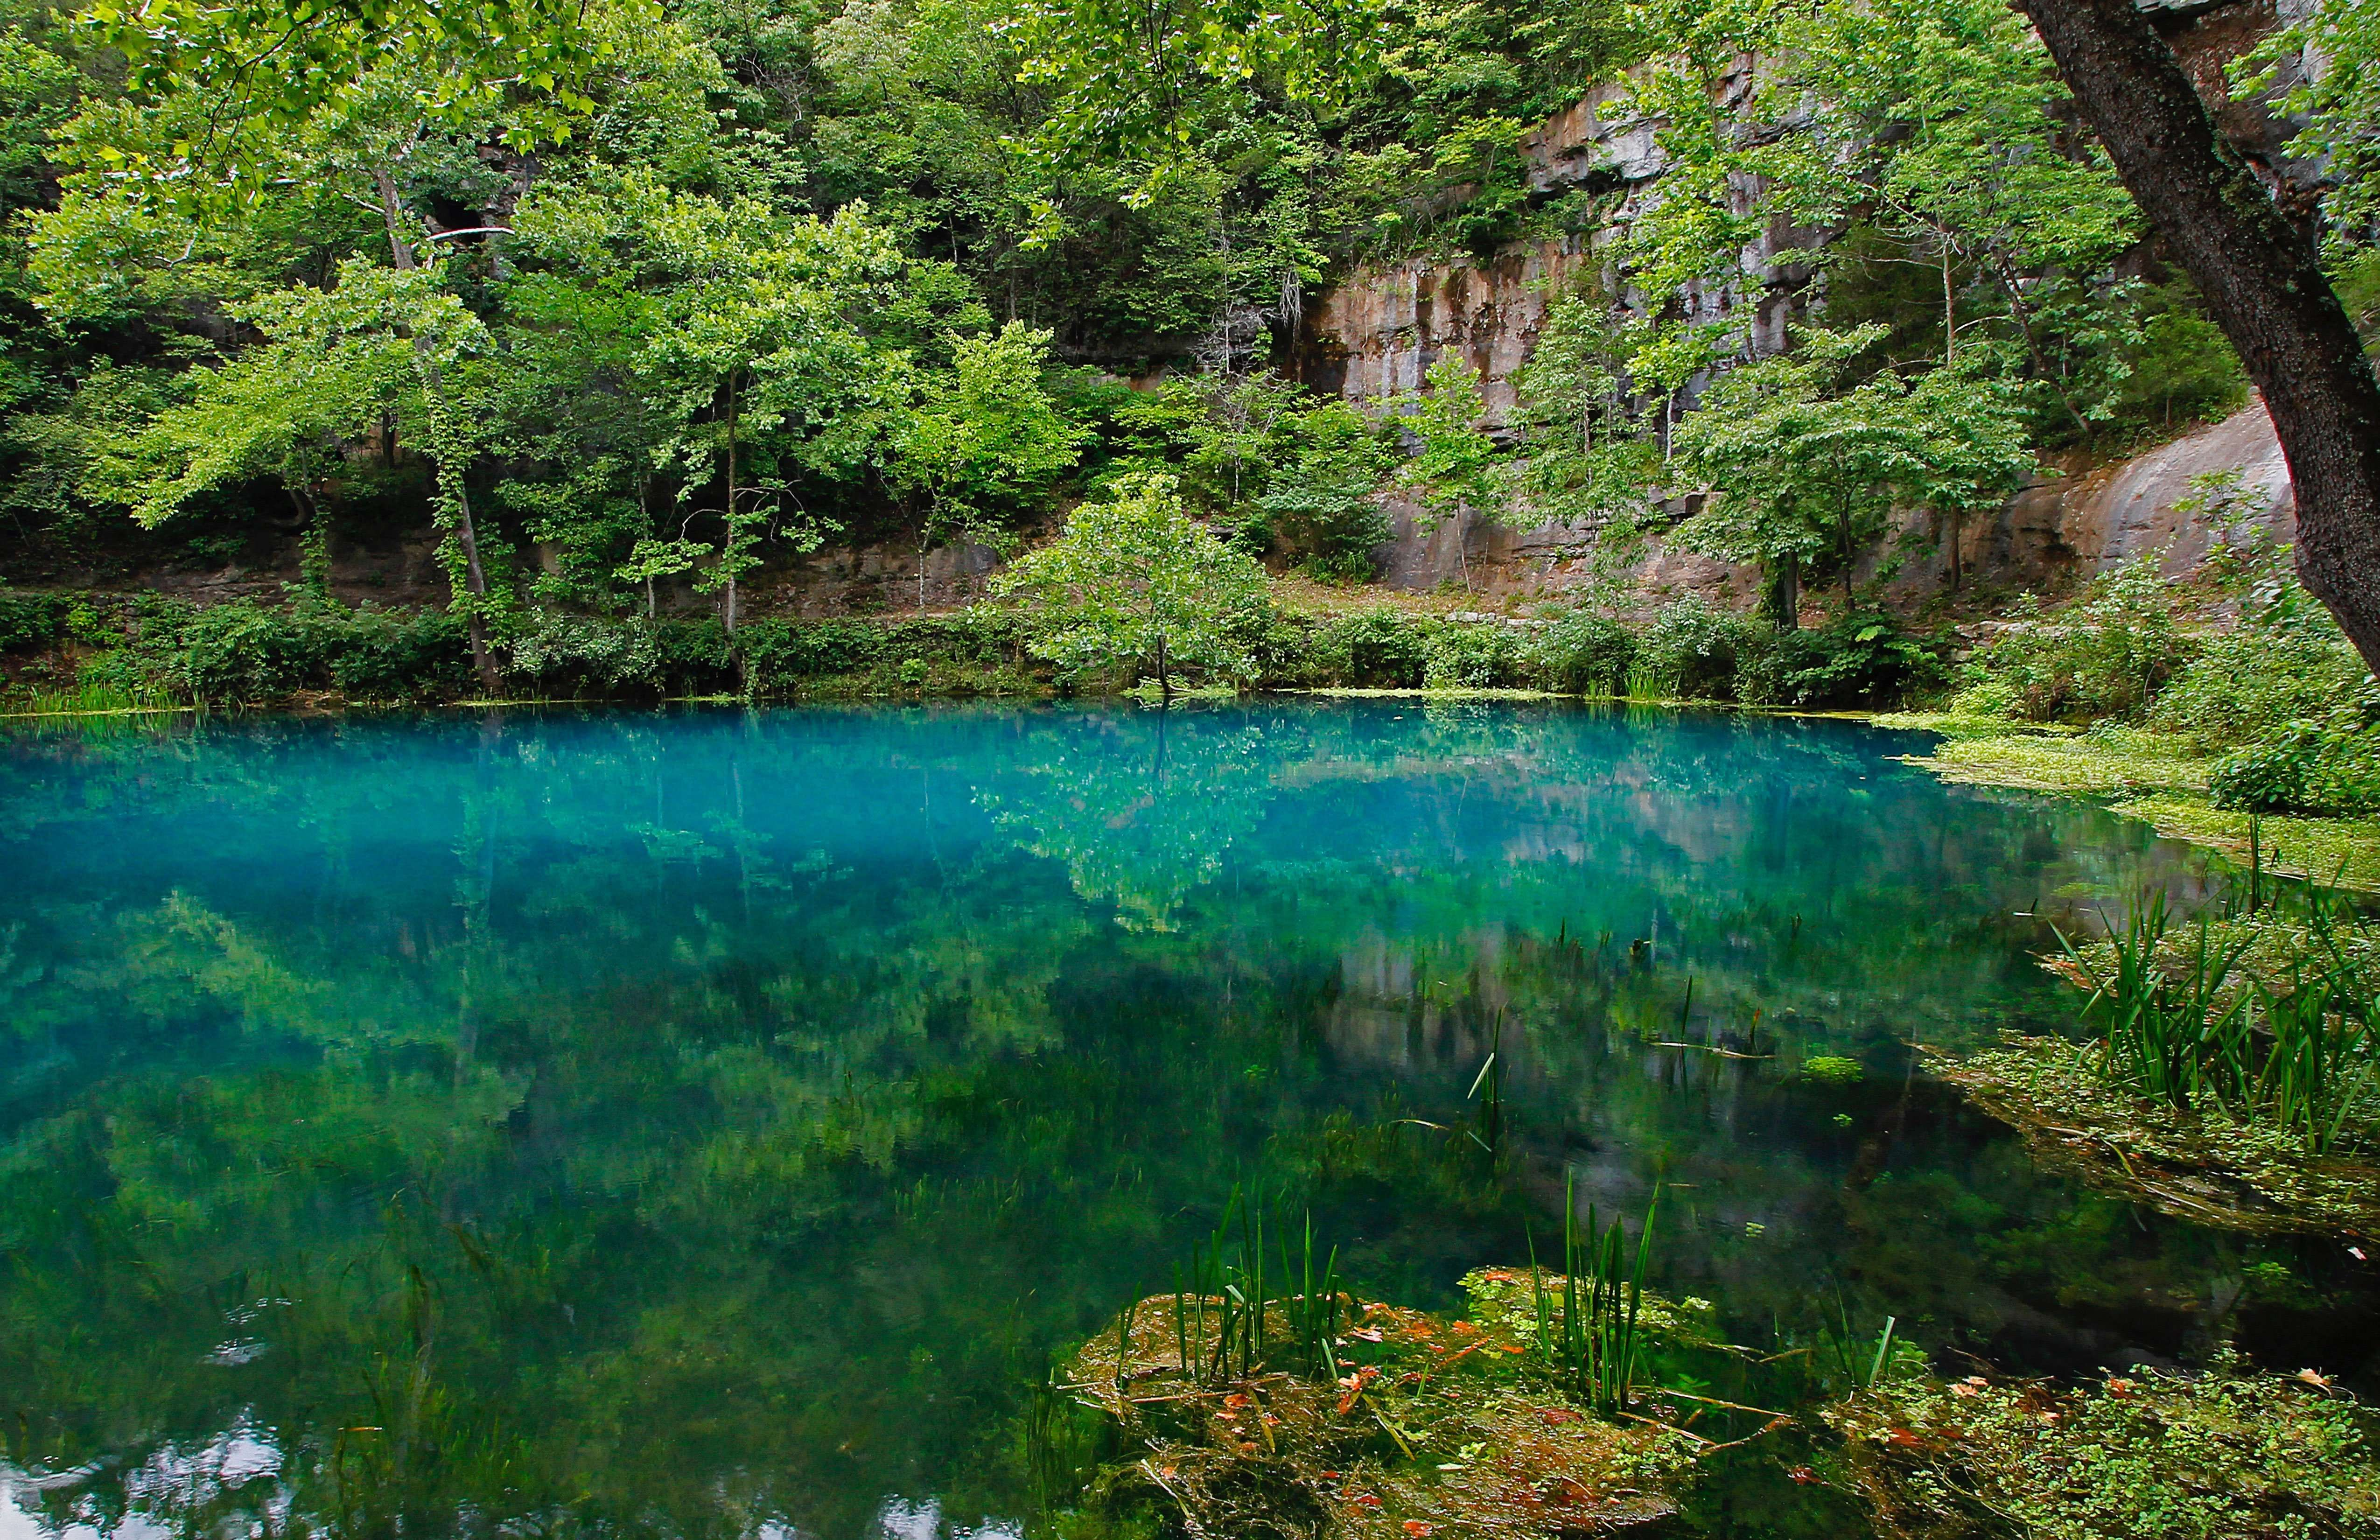 Alley Spring's pool is a stunning aquamarine filled with diverse life - a Mill House with gift shop & activities